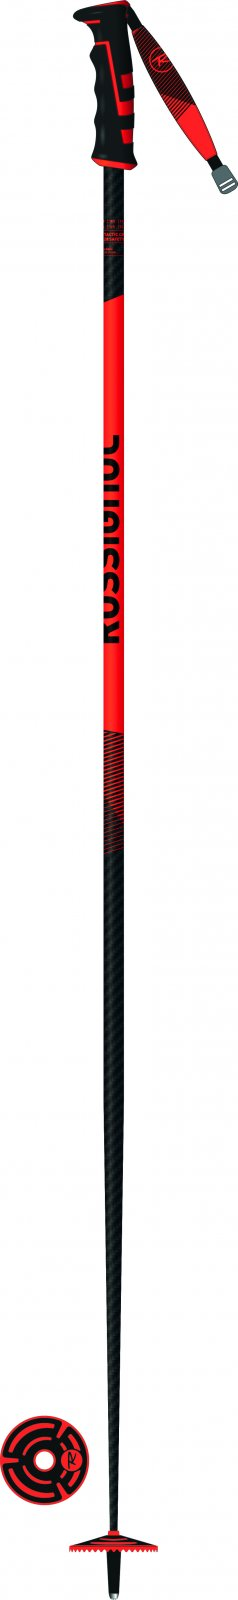 Rossignol Tactic Carbon 20 Safety Ski Poles 2020